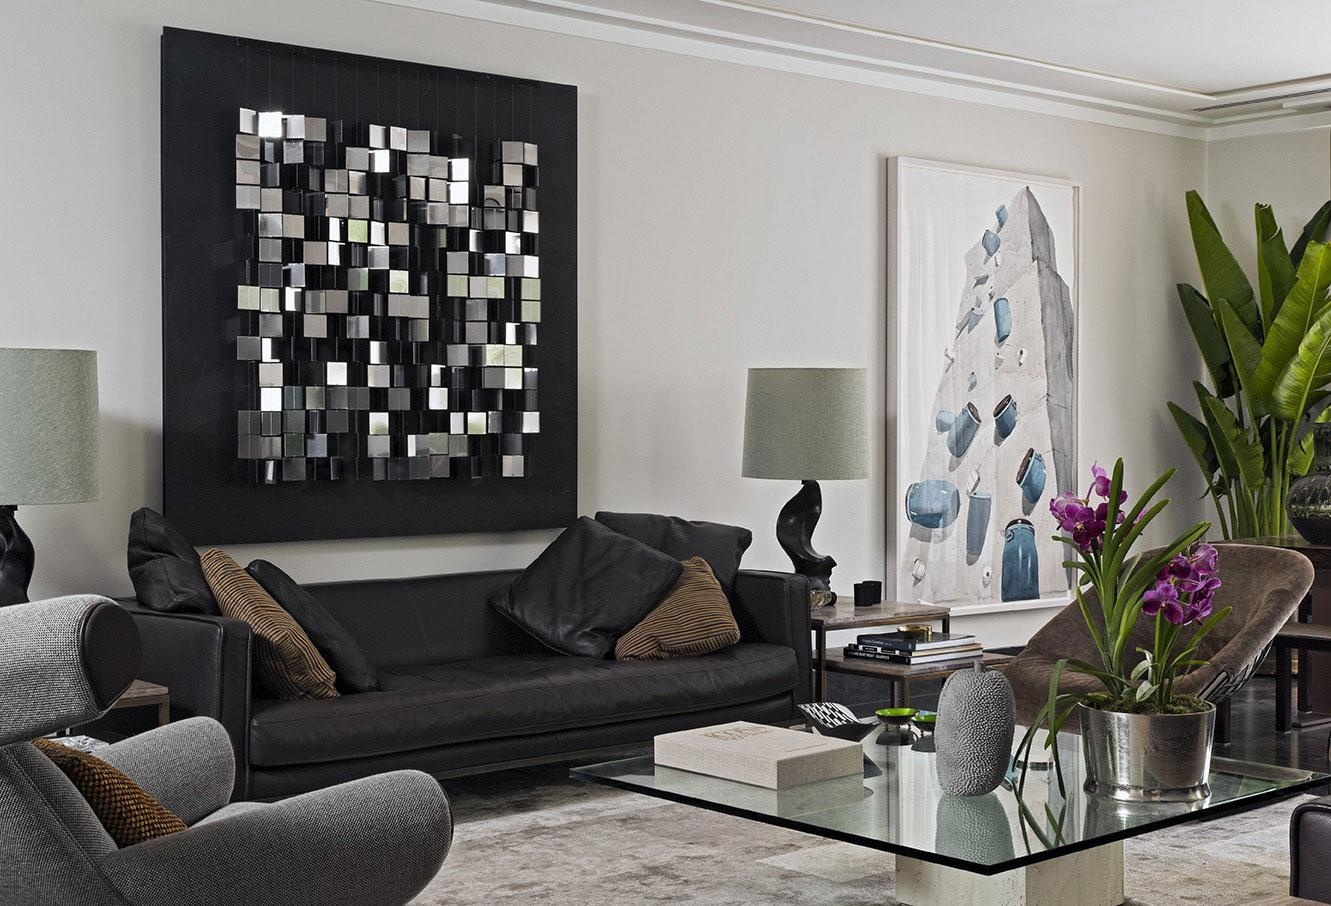 Ideas Of Large Wall Art For Living Room | Doherty Living Room for Wall Art for Living Room